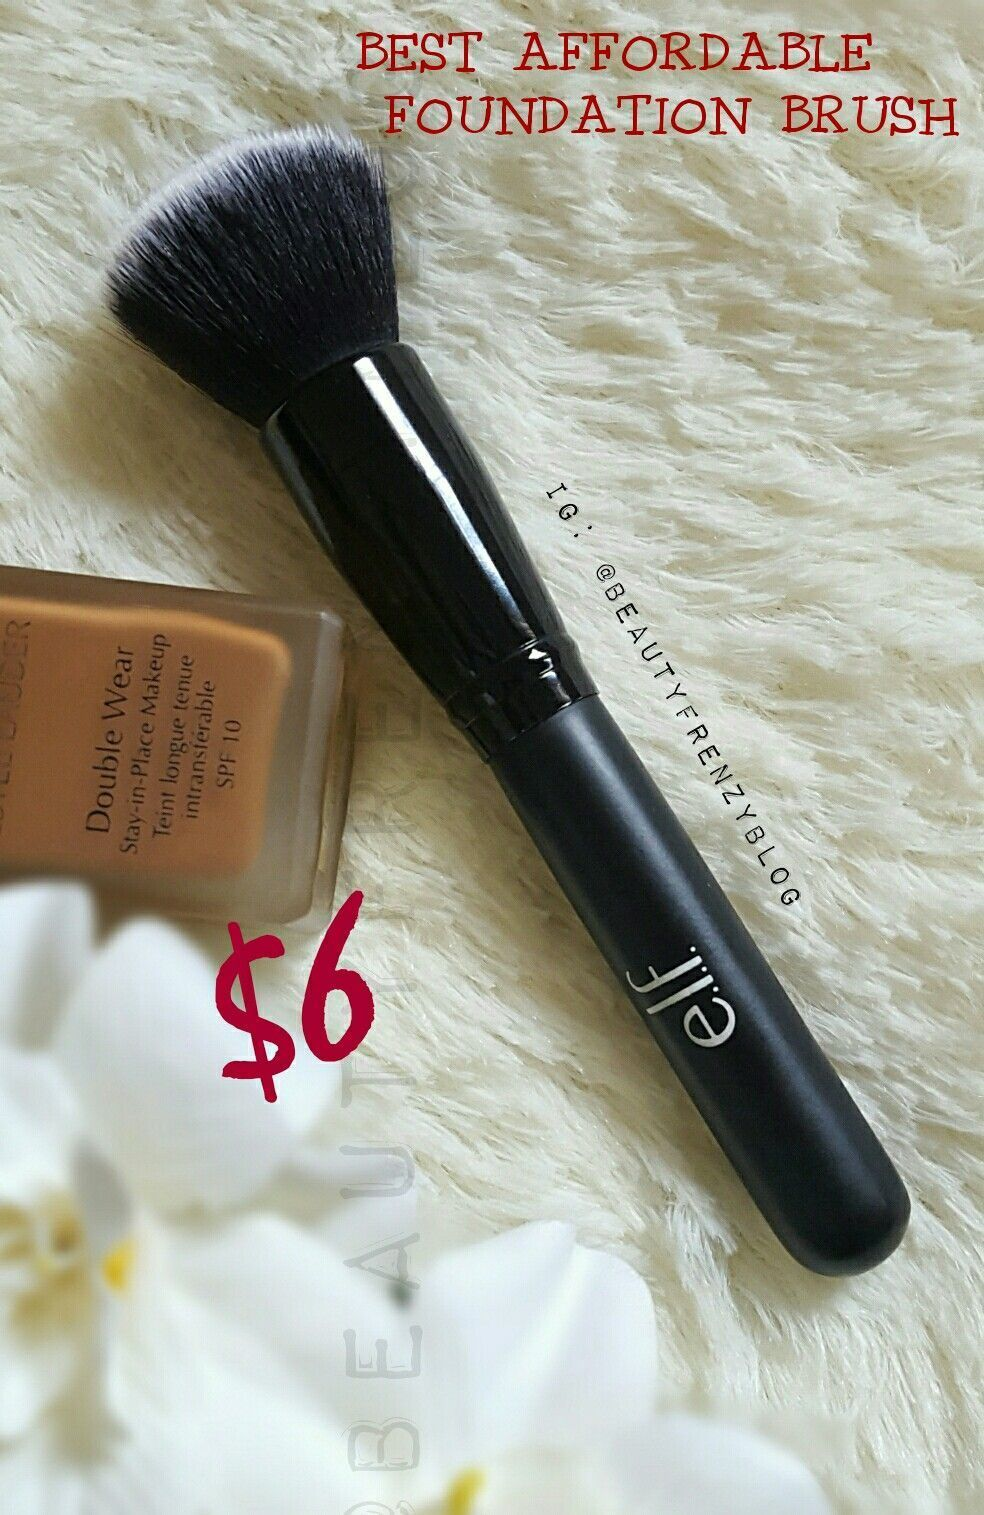 Best Affordable Foundation Brush Looking for a good